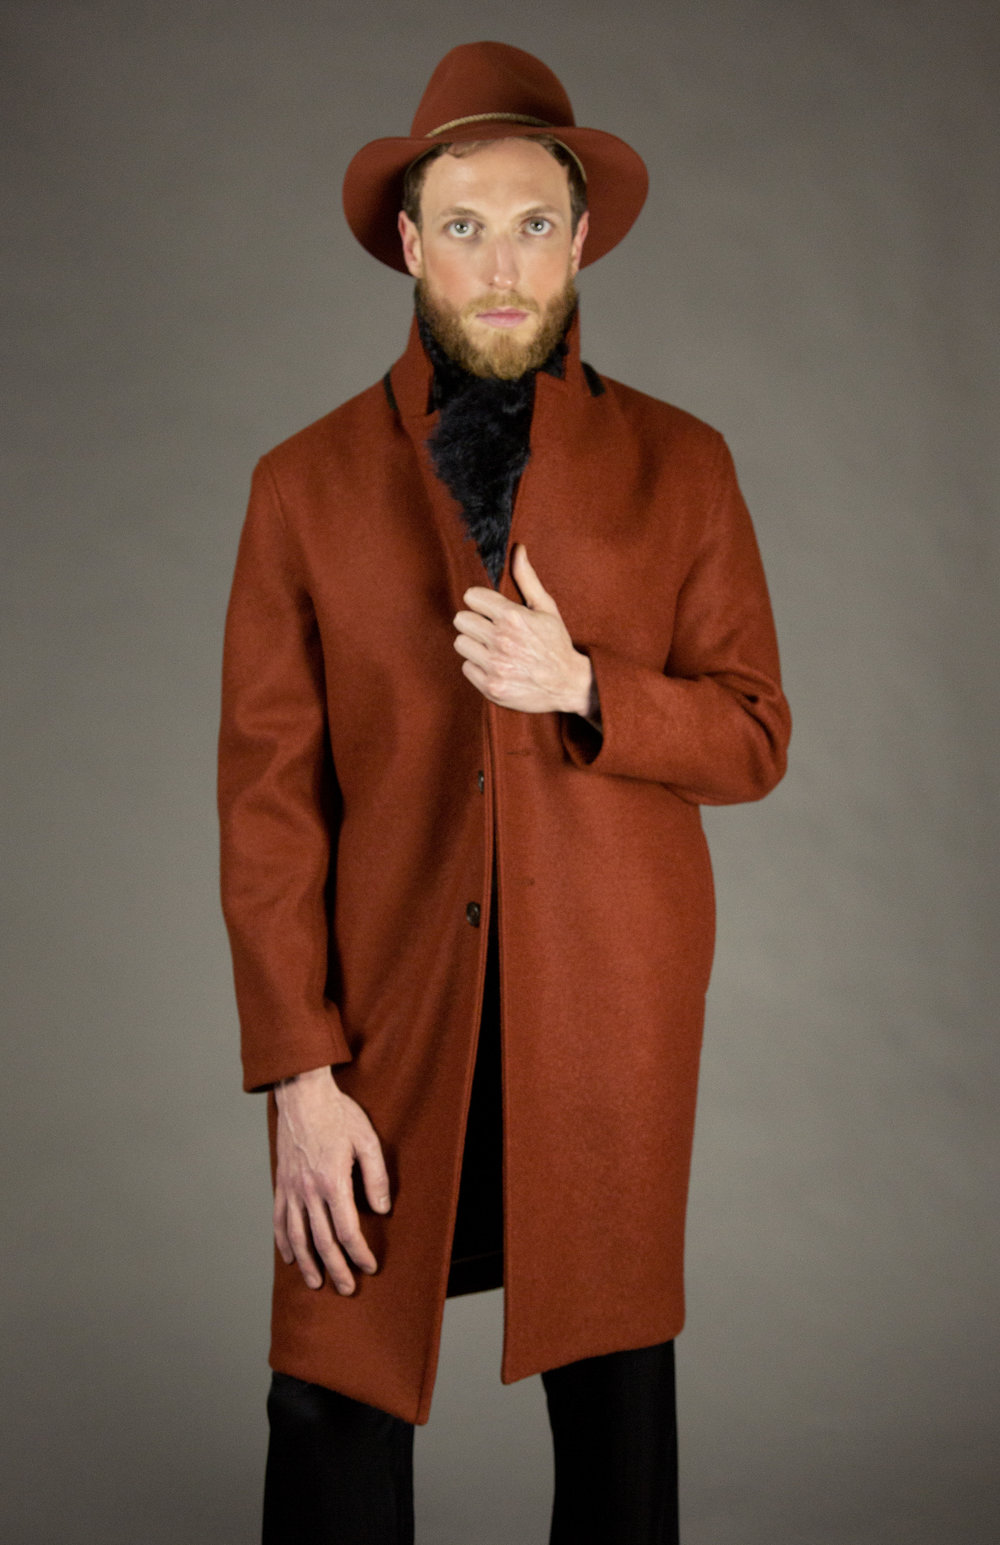 COAT 1 RUST  2-button walking coat.oversized fit. drop shoulder. unlined with bias piped seams.natural melange rope detail at neck.natural horn buttons. below knee length.  sizes 0-1-2-3  100% italian boiled-wool jersey  also available in black